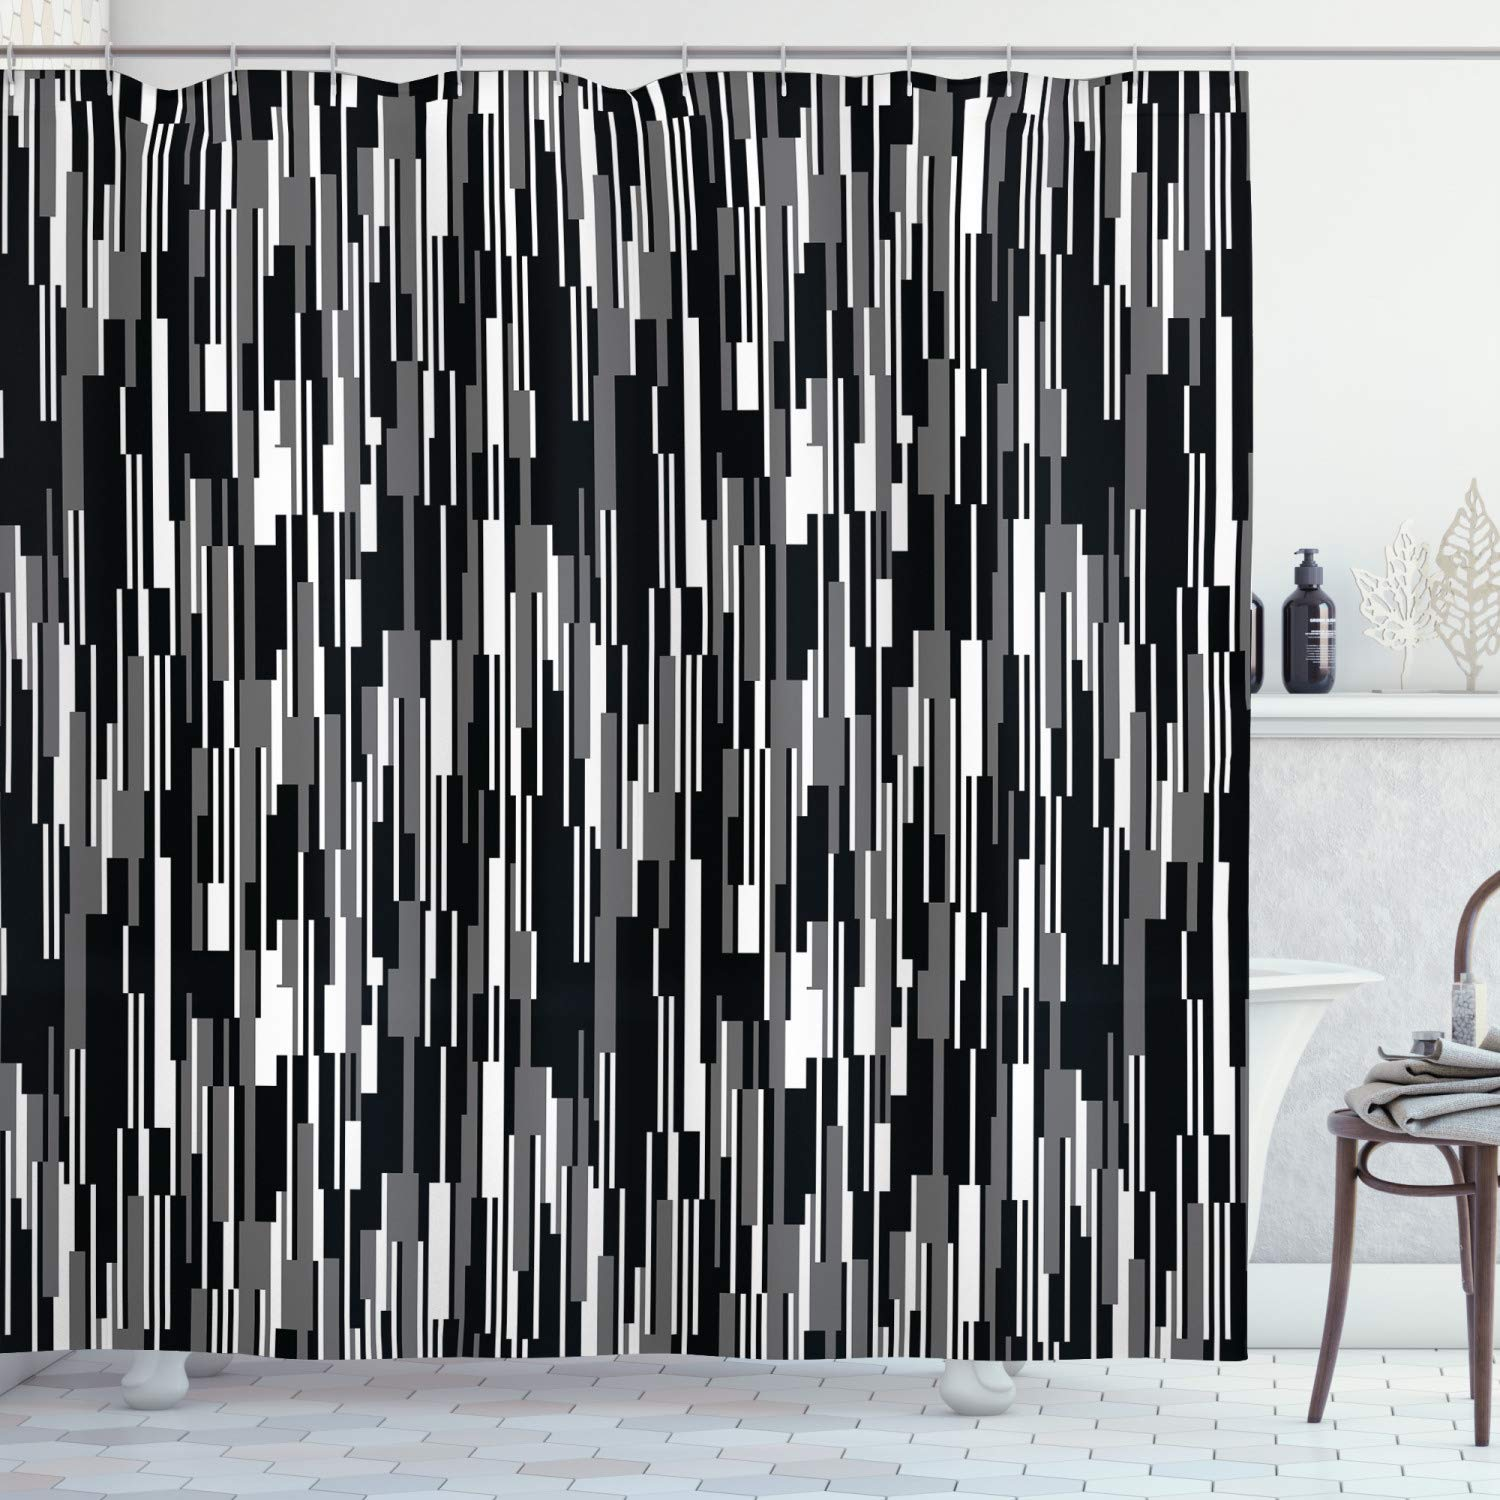 Ambesonne Black And White Shower Curtain Barcode Pattern Abstraction Vertical Stripes In Grayscale Colors Cloth Fabric Bathroom Decor Set With Hooks 70 Long Black Grey White